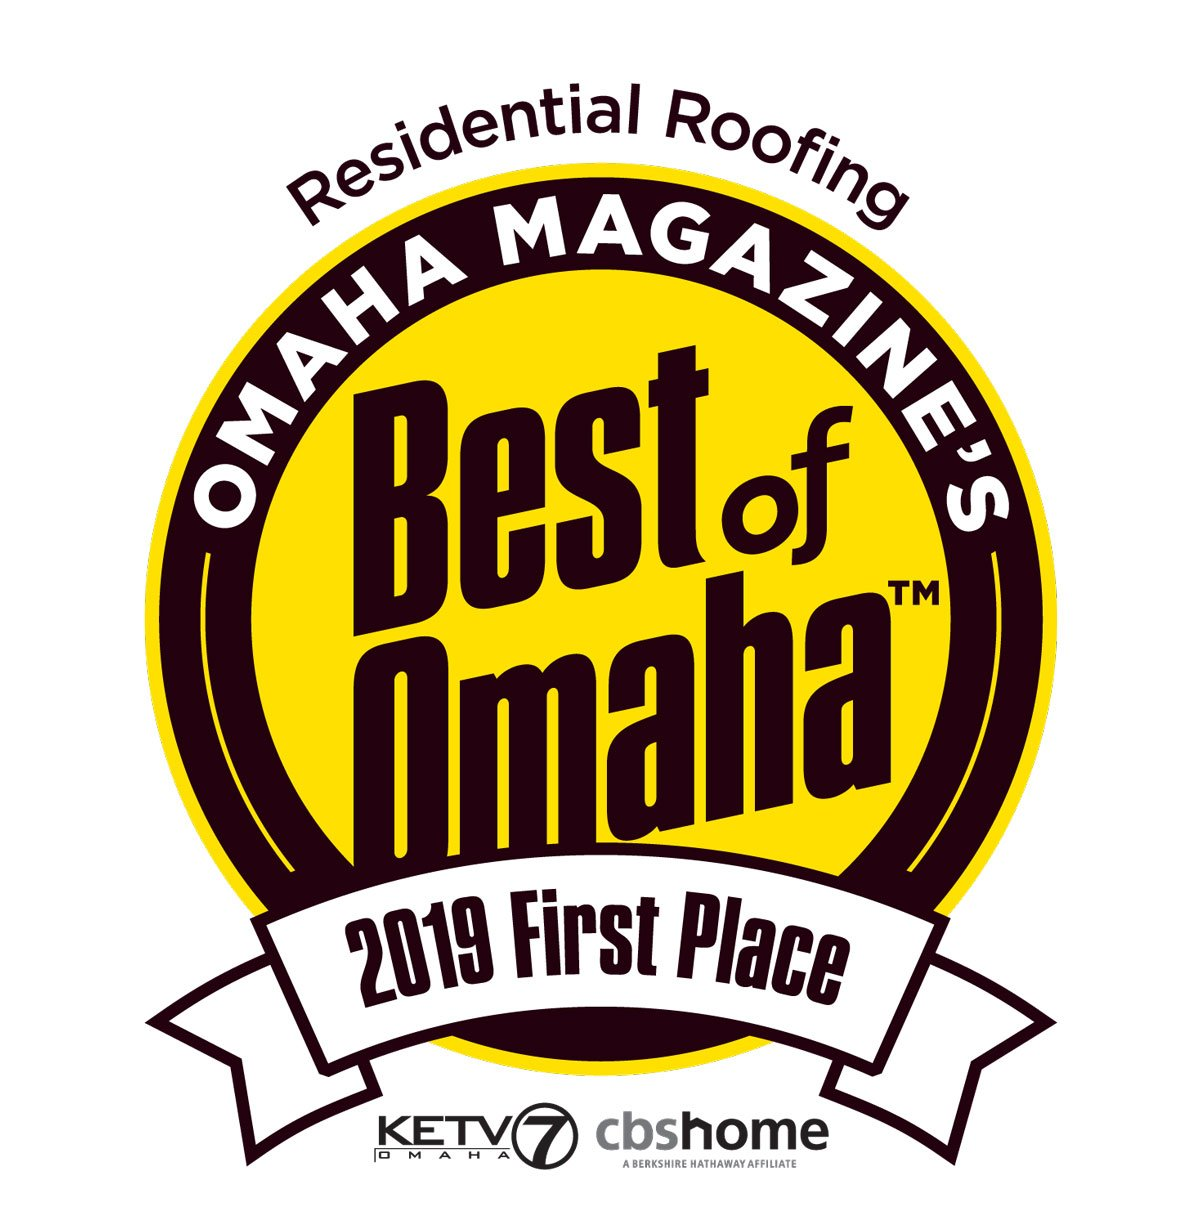 Our best Roofing in Omaha Award!